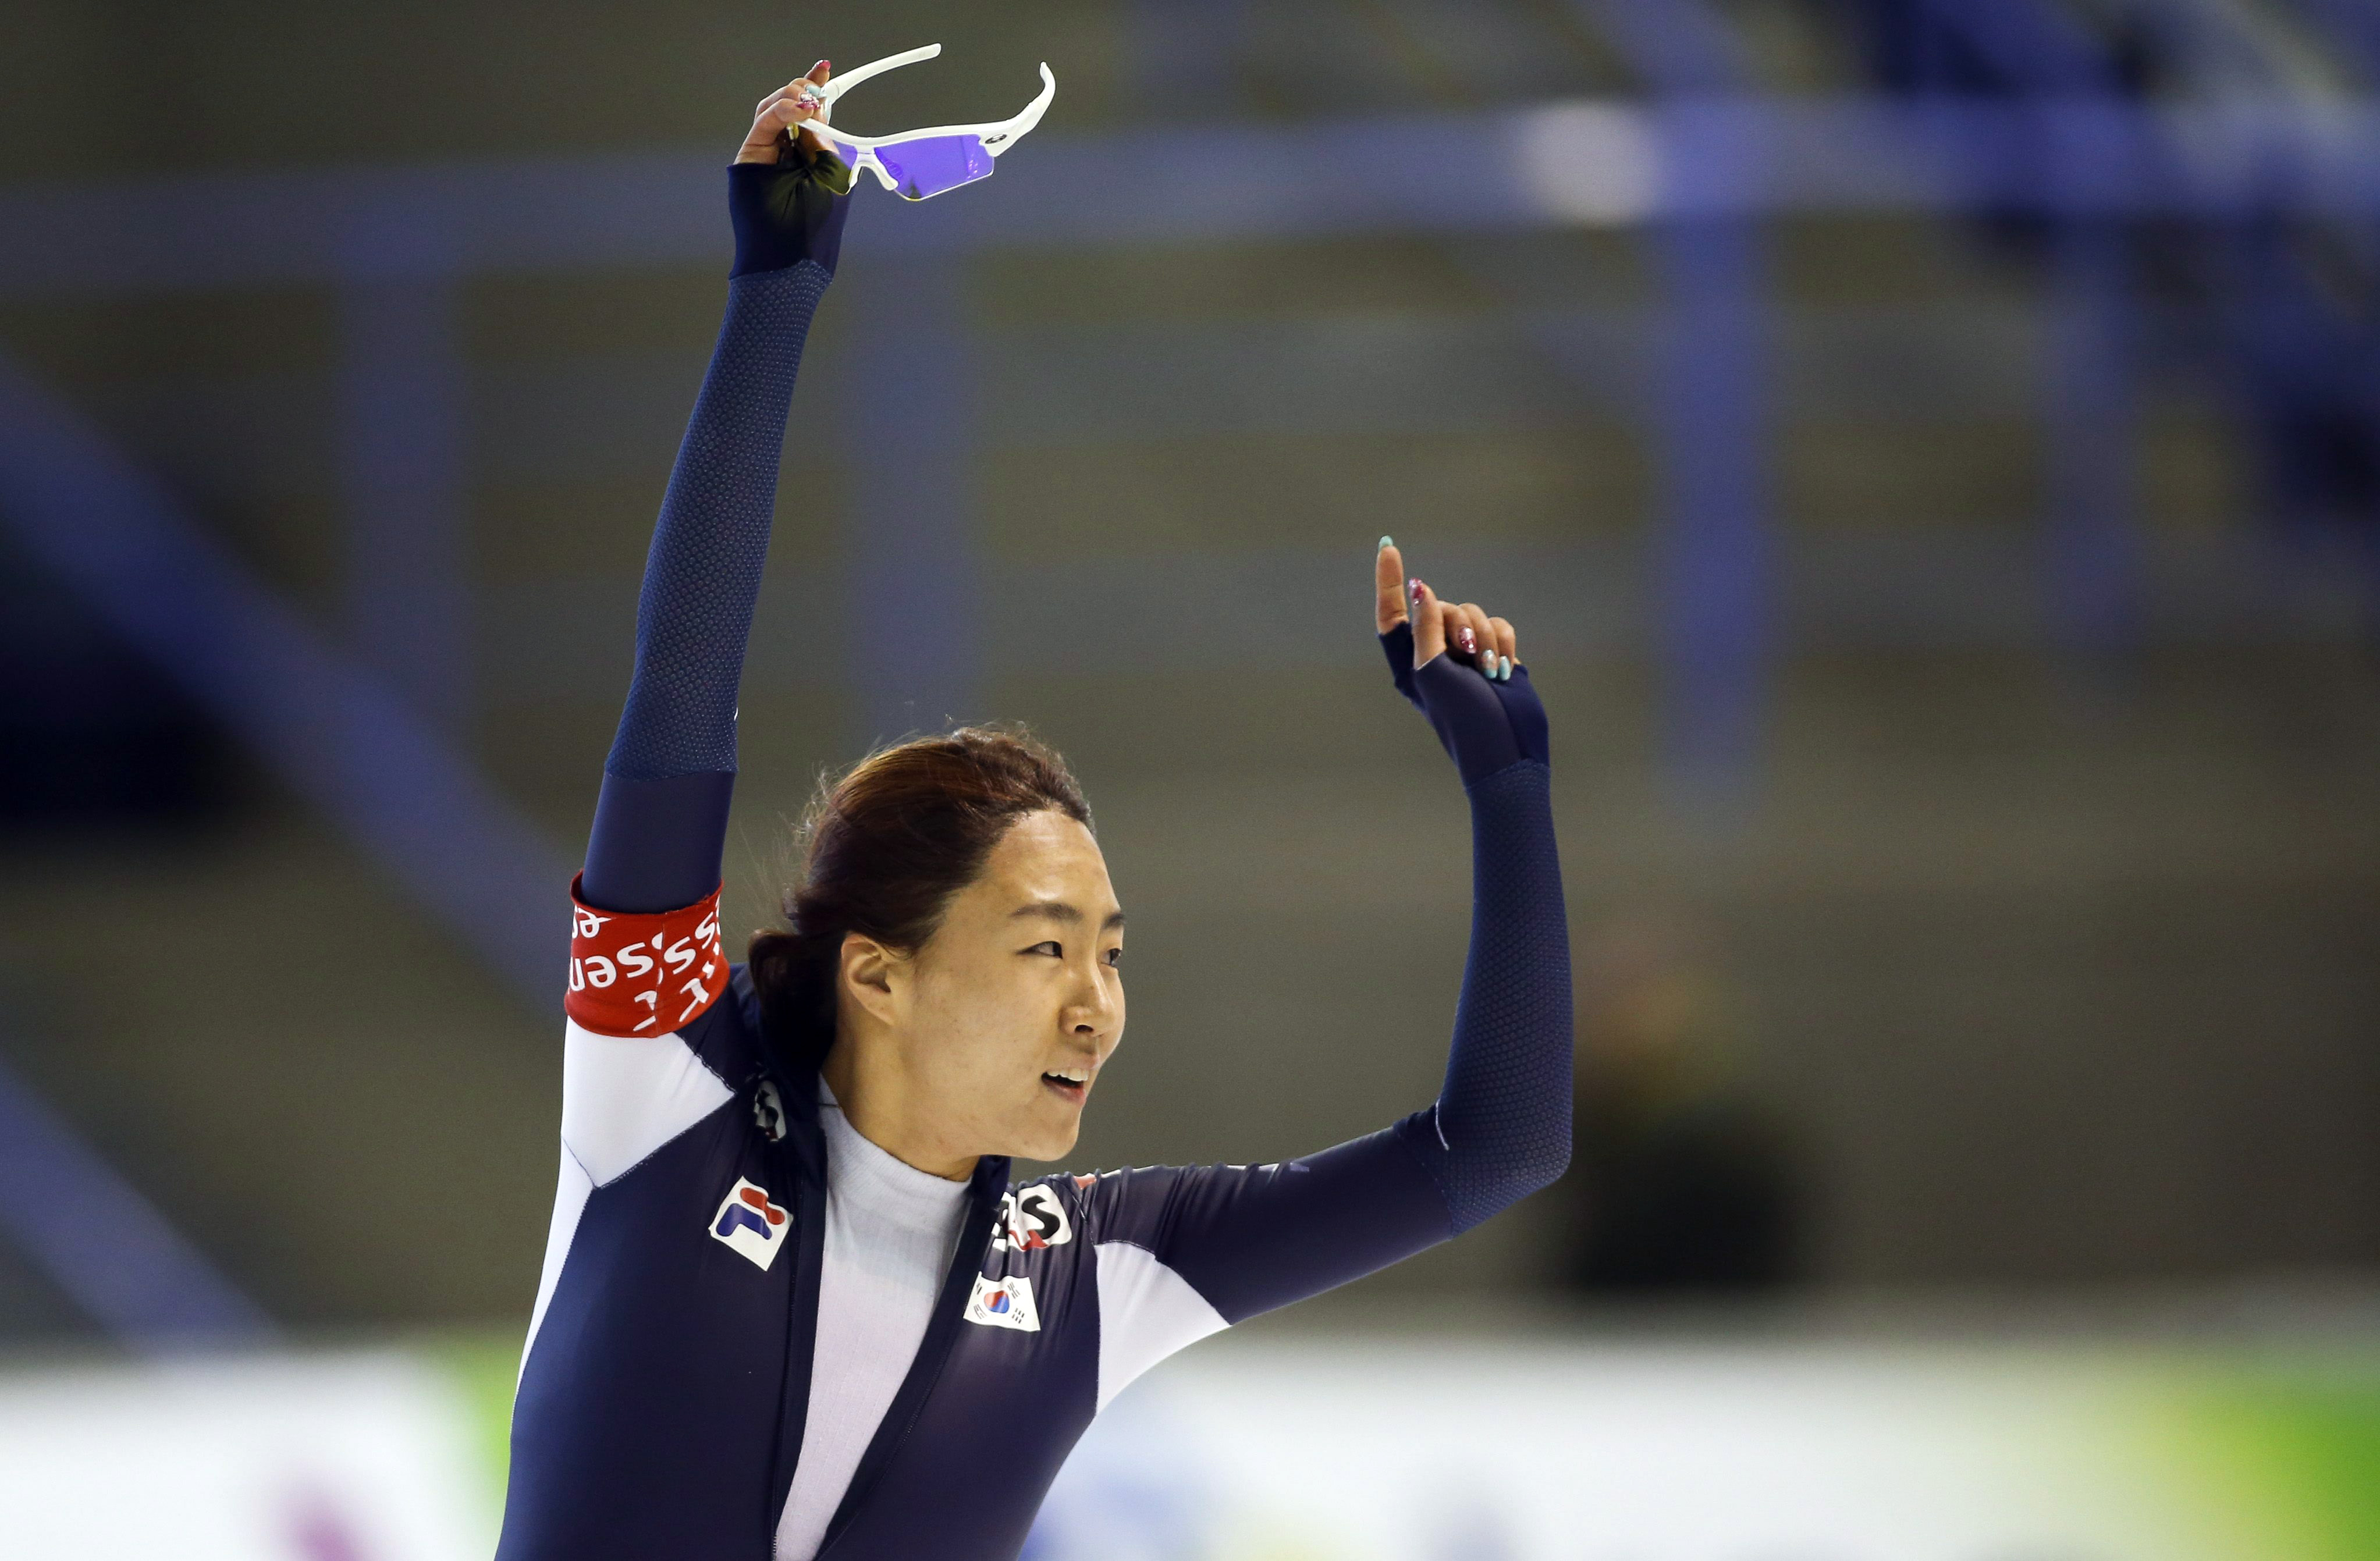 South Korea's Lee Sang-hwa celebrates her new world record during the ladies 500-meter competition at the World Cup speedskating event in Calgary, Alberta, Saturday, Nov. 9, 2013. Lee's time of 36.74 seconds at the Olympic Oval in Calgary erased the previous mark of 36.80 she'd set in Calgary on Jan. 20. (AP Photo/The Canadian Press, Jeff McIntosh)